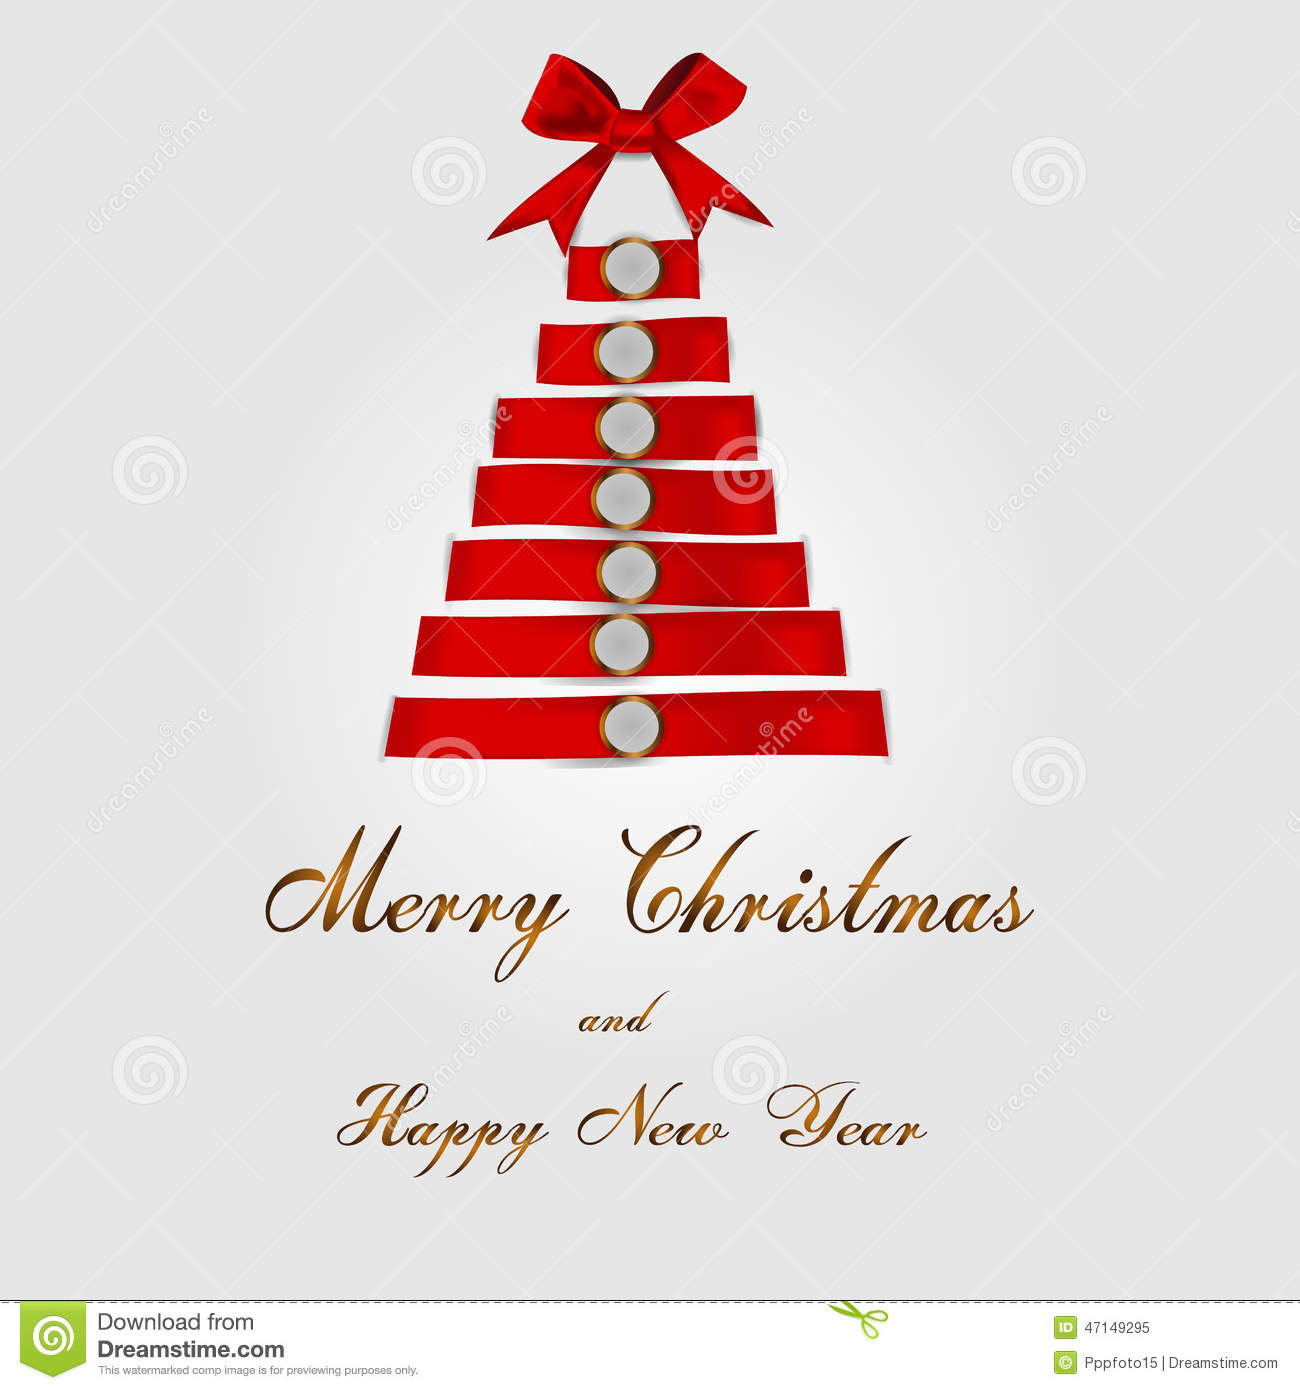 Christmas Tree With Red Ribbon: Christmas Tree Background With Red Ribbon Stock